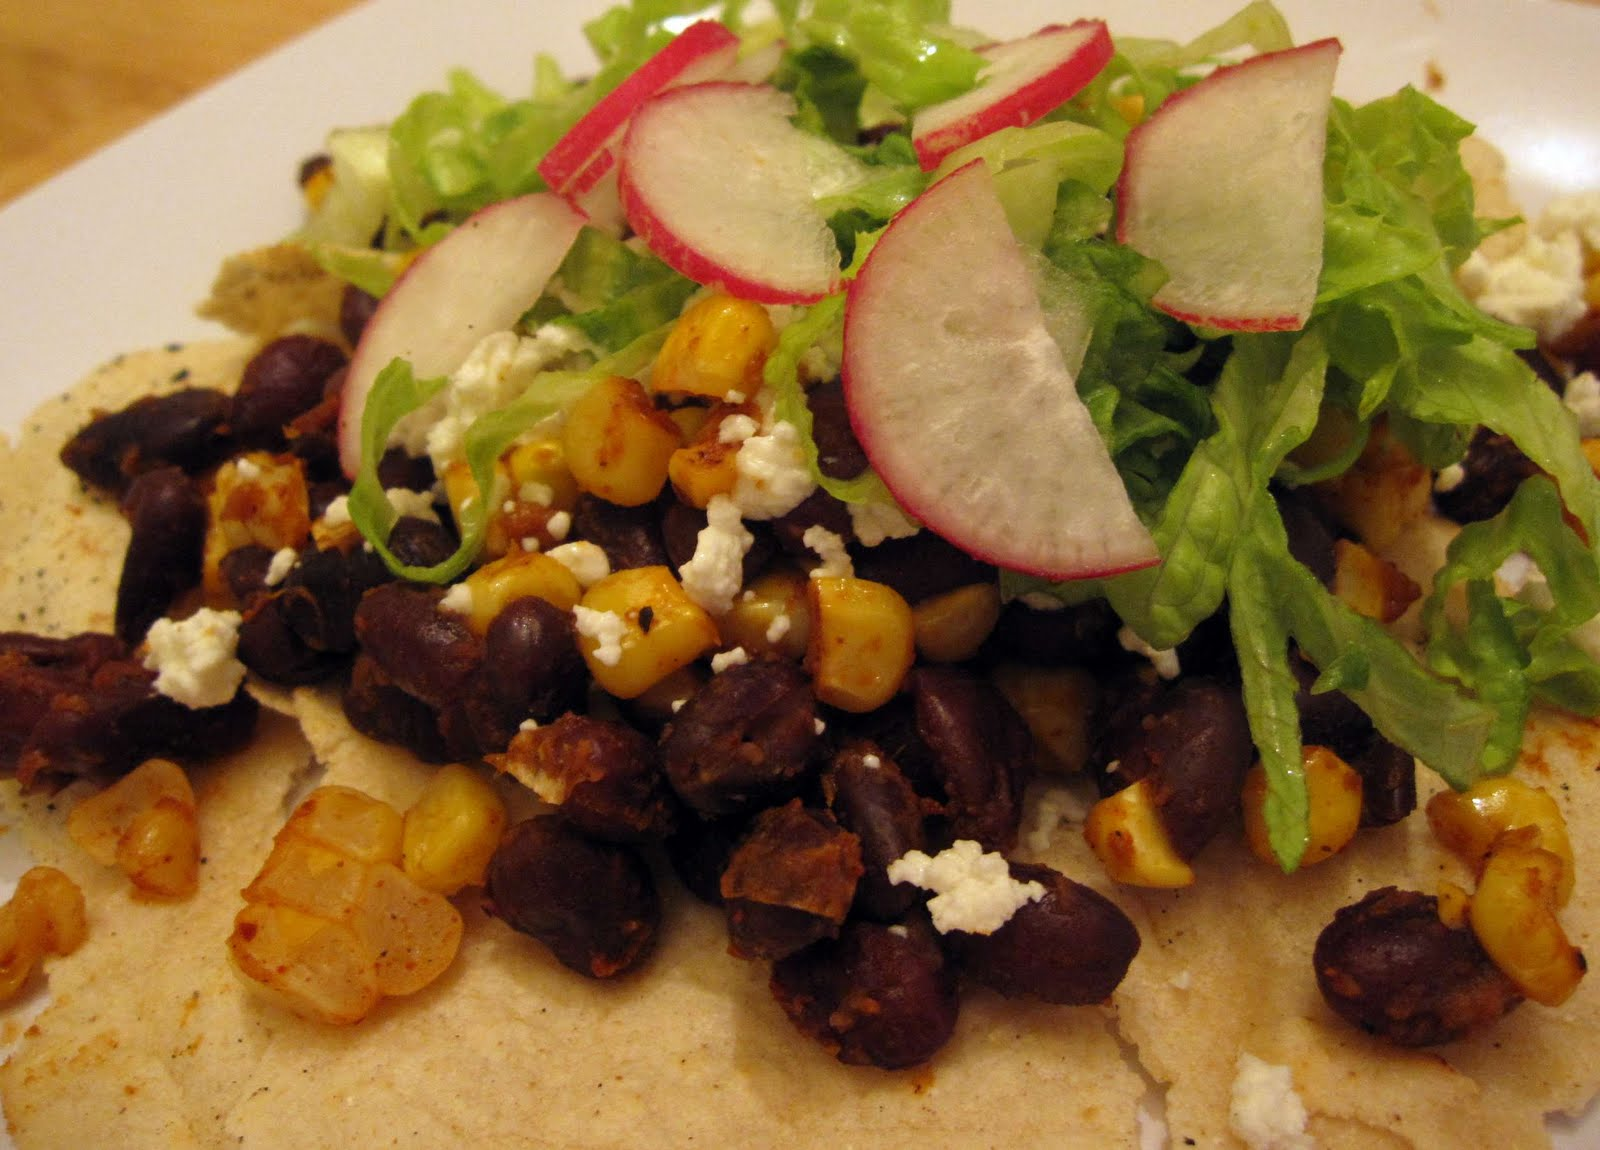 The Scratch Patch: Black Bean, Corn and Goat Cheese Tacos